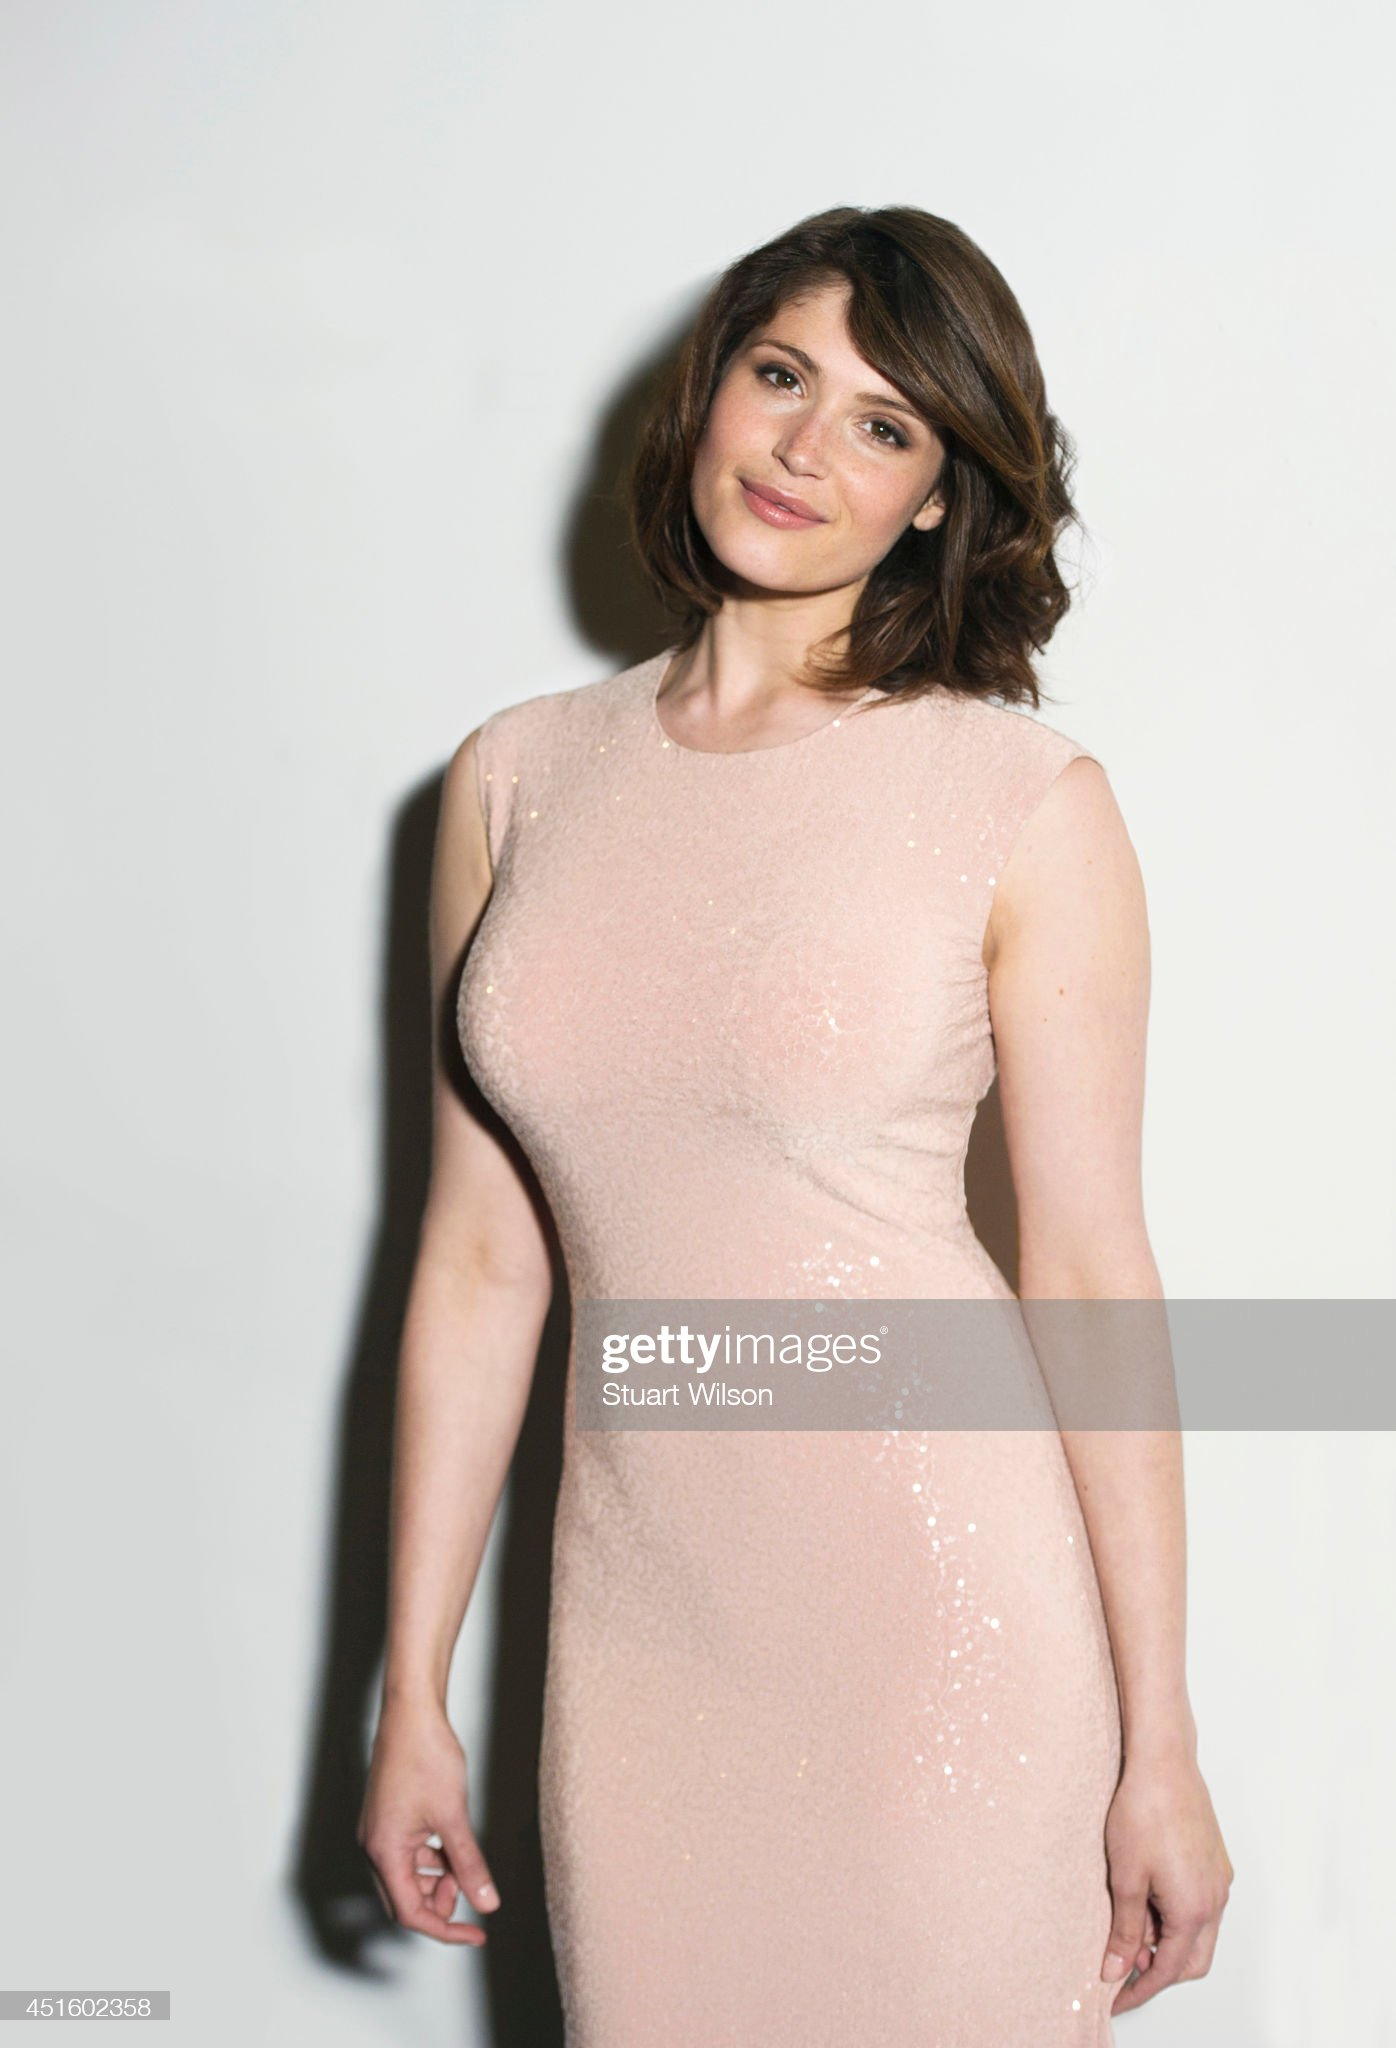 actress-gemma-arterton-is-photographed-on-april-26-2014-in-london-picture-id451602358